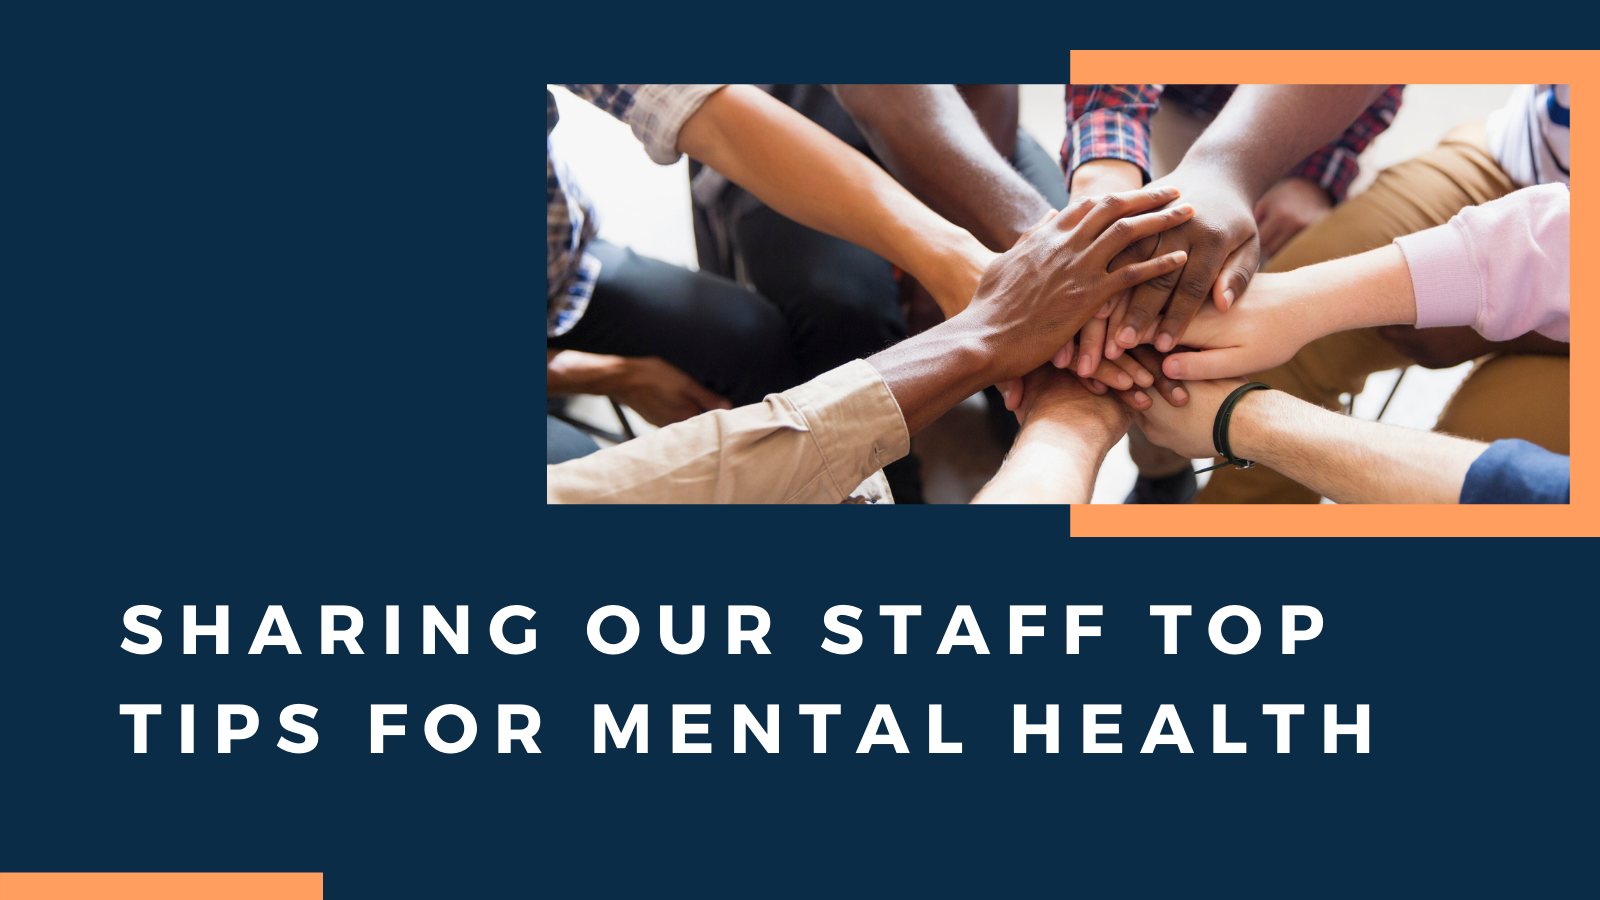 Sharing our staff top tips for mental health